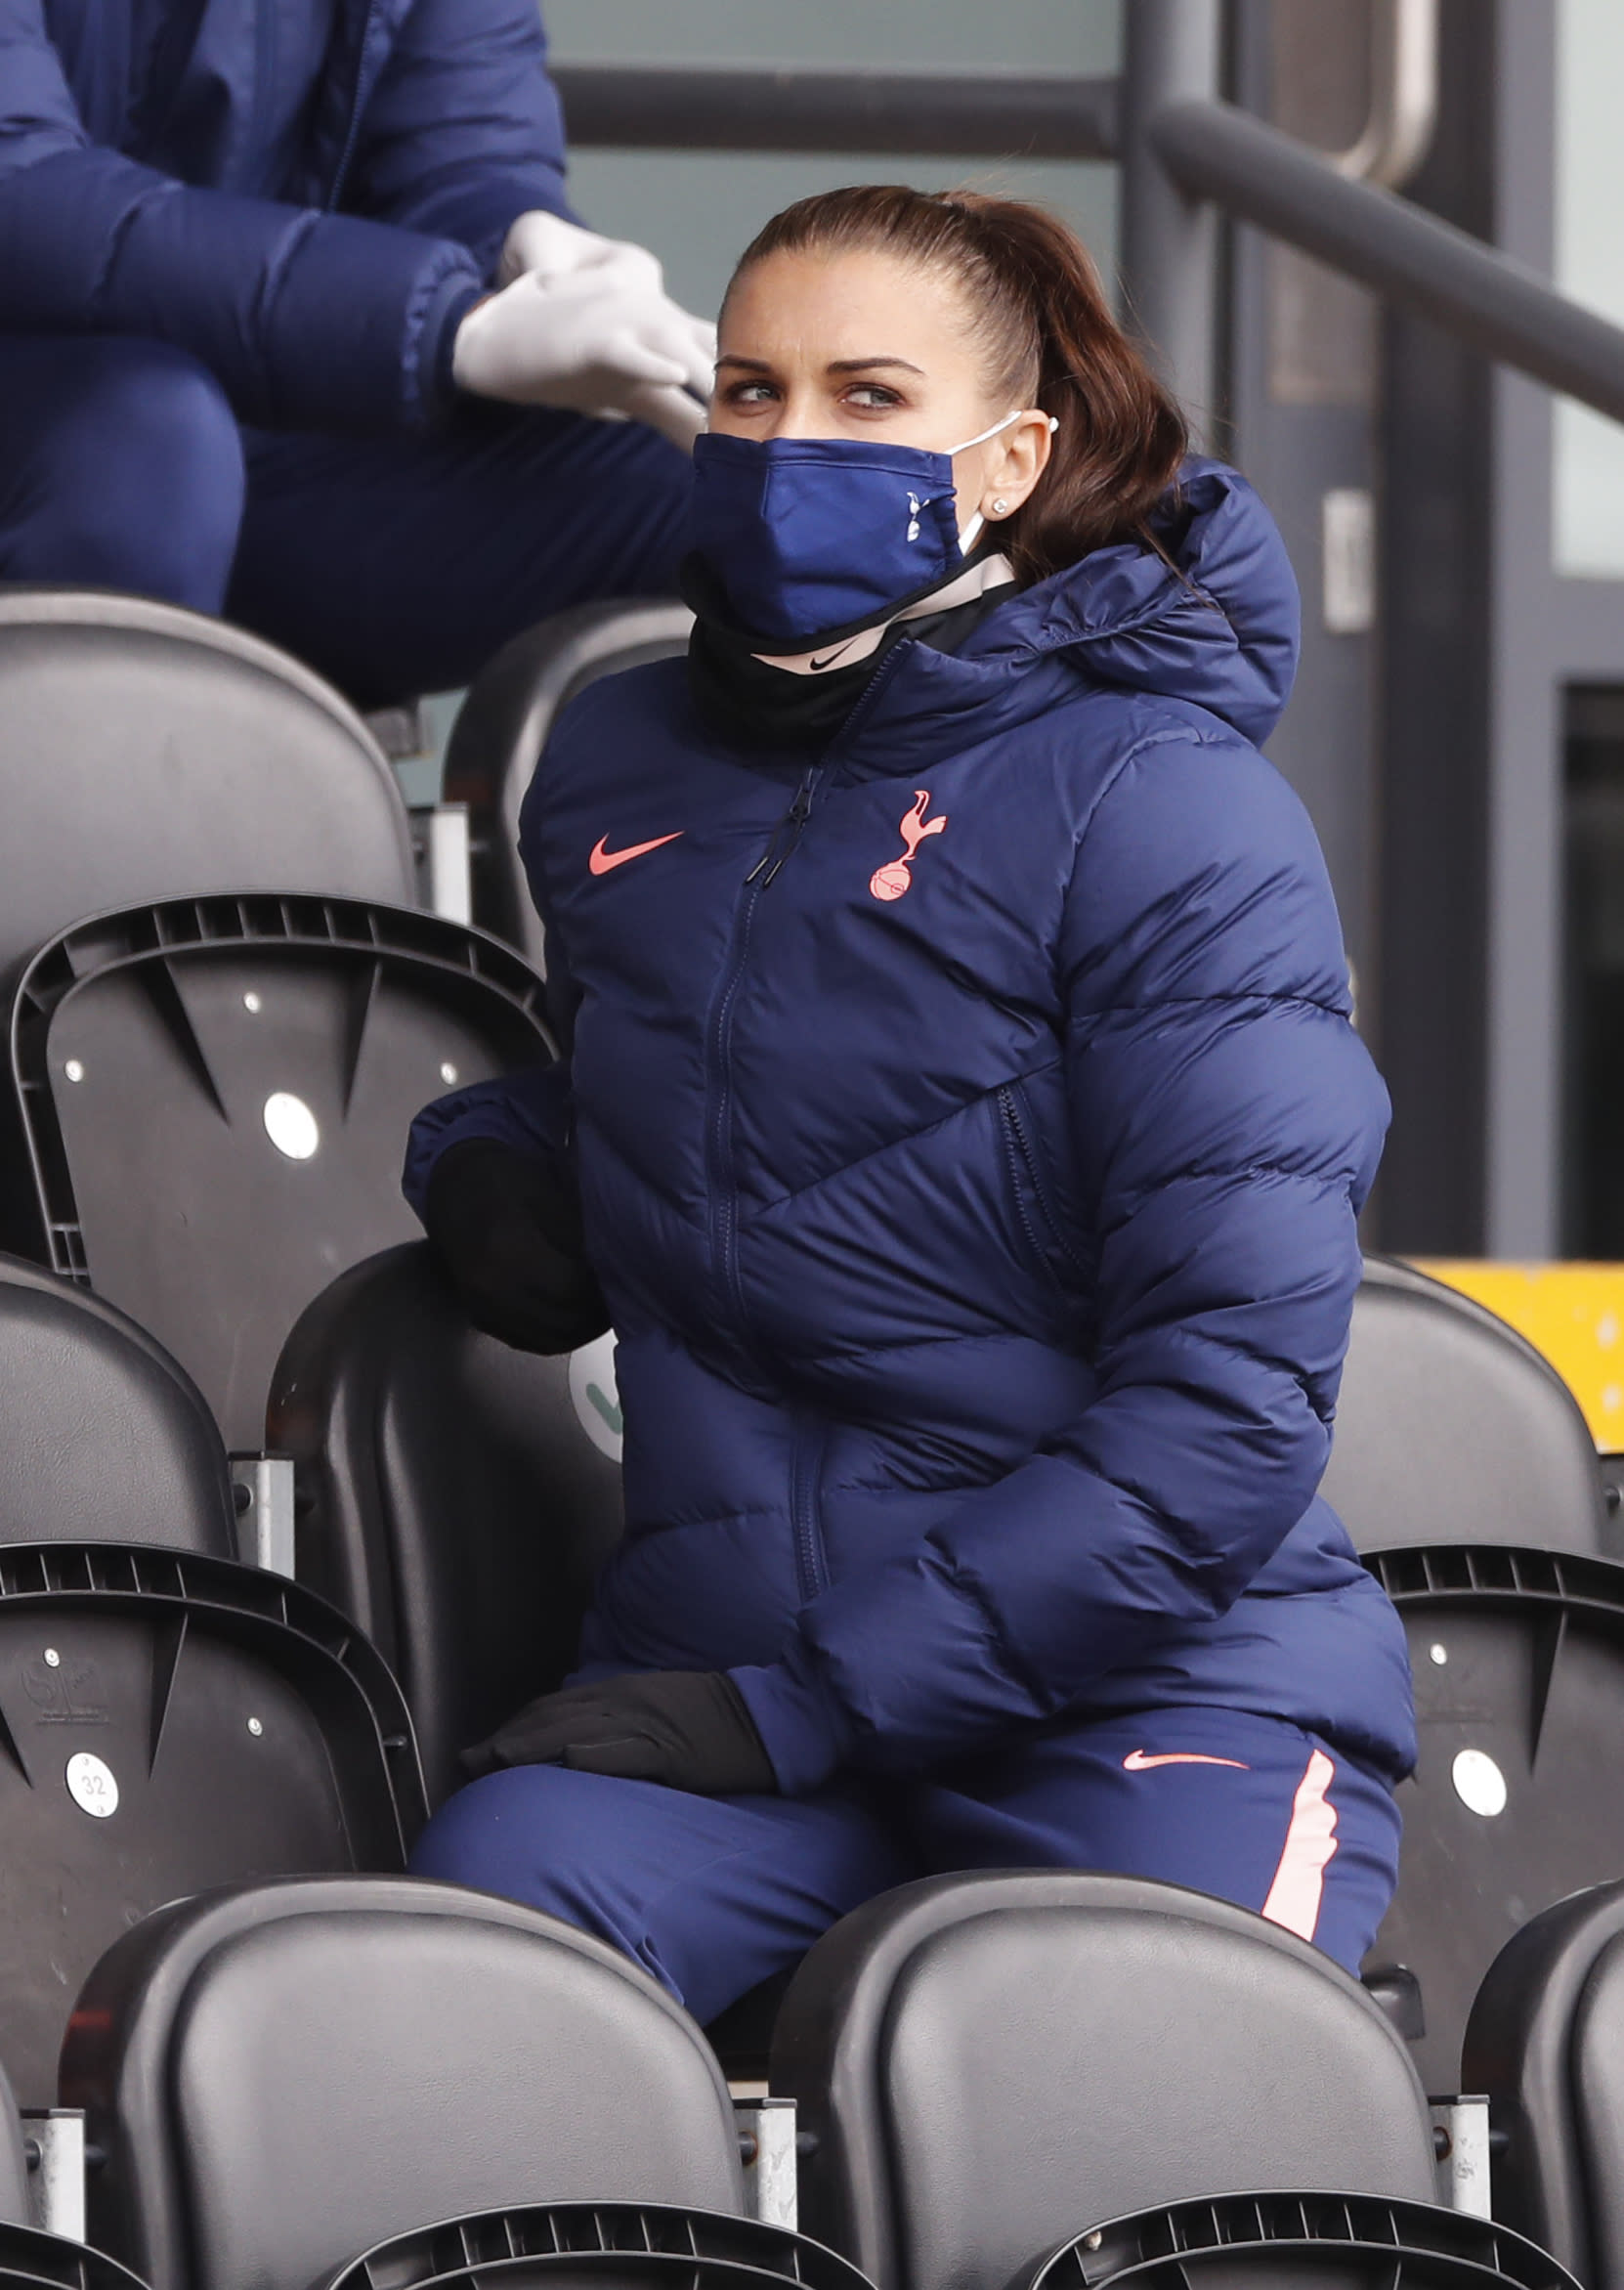 Tottenham Hotspur's Alex Morgan sits in the stands during the English Women's Super League match between Tottenham Hotspur and Manchester United at the Hive stadium in London Saturday, Oct 10 2020. (AP Photo/Alastair Grant)